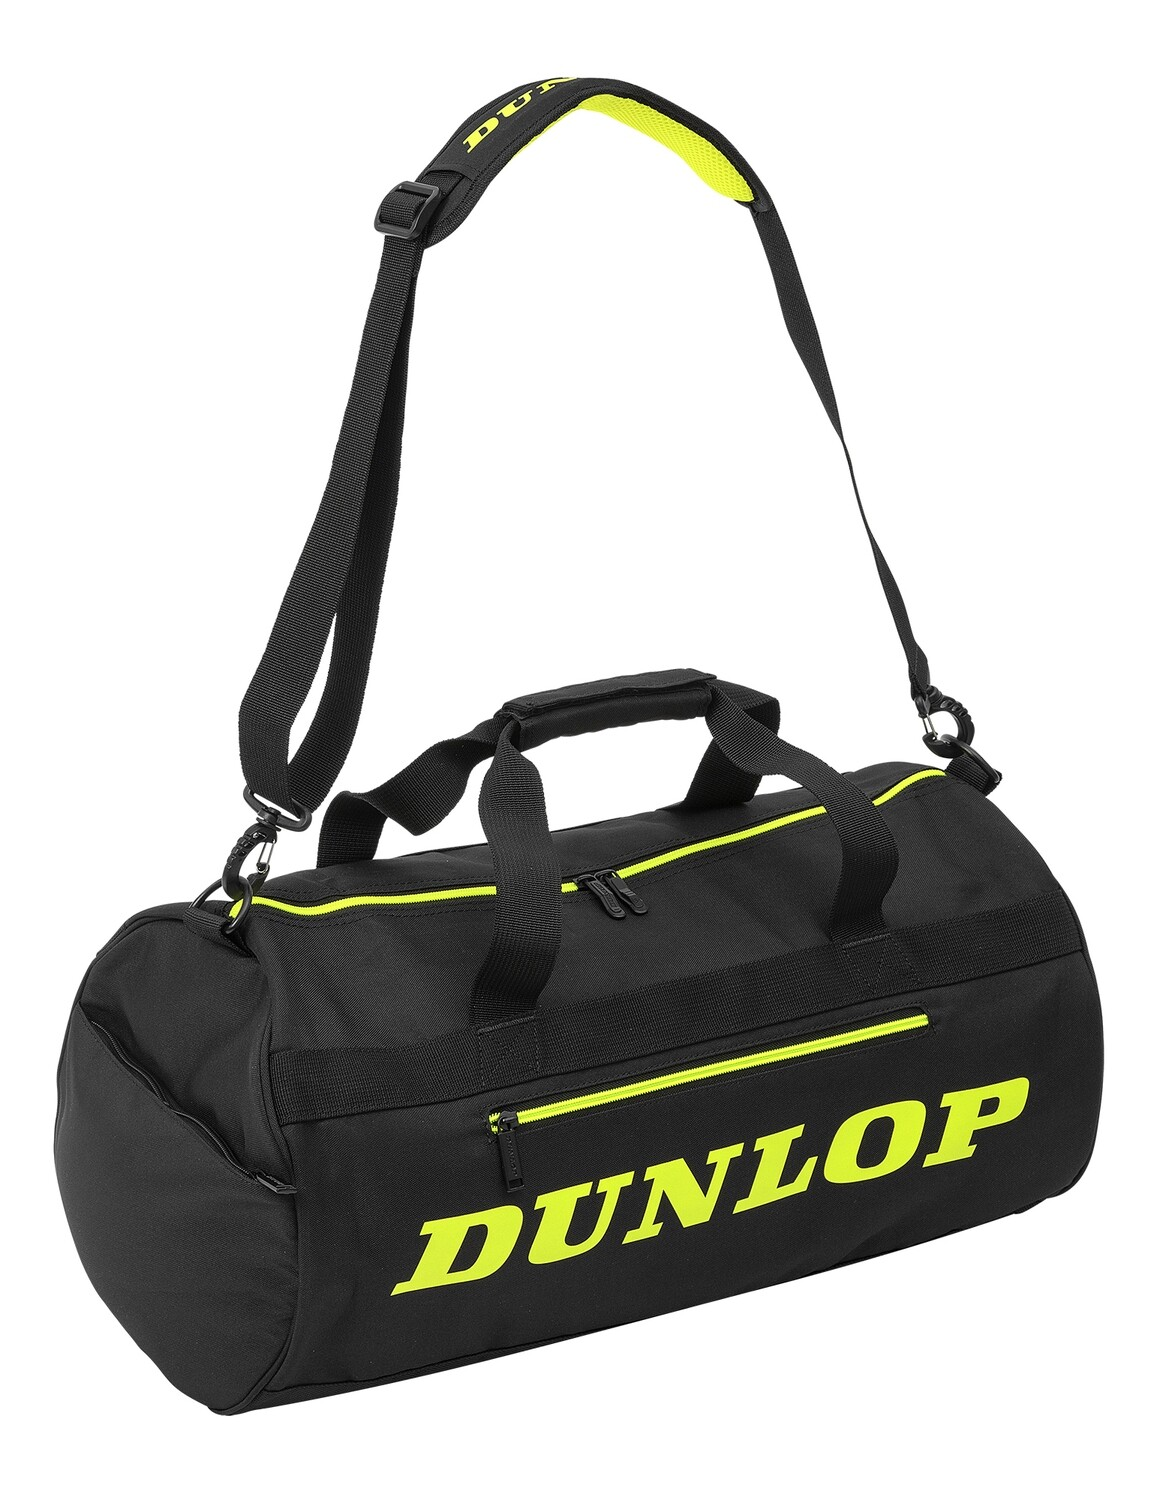 DUNLOP SX Performance Duffle Bag